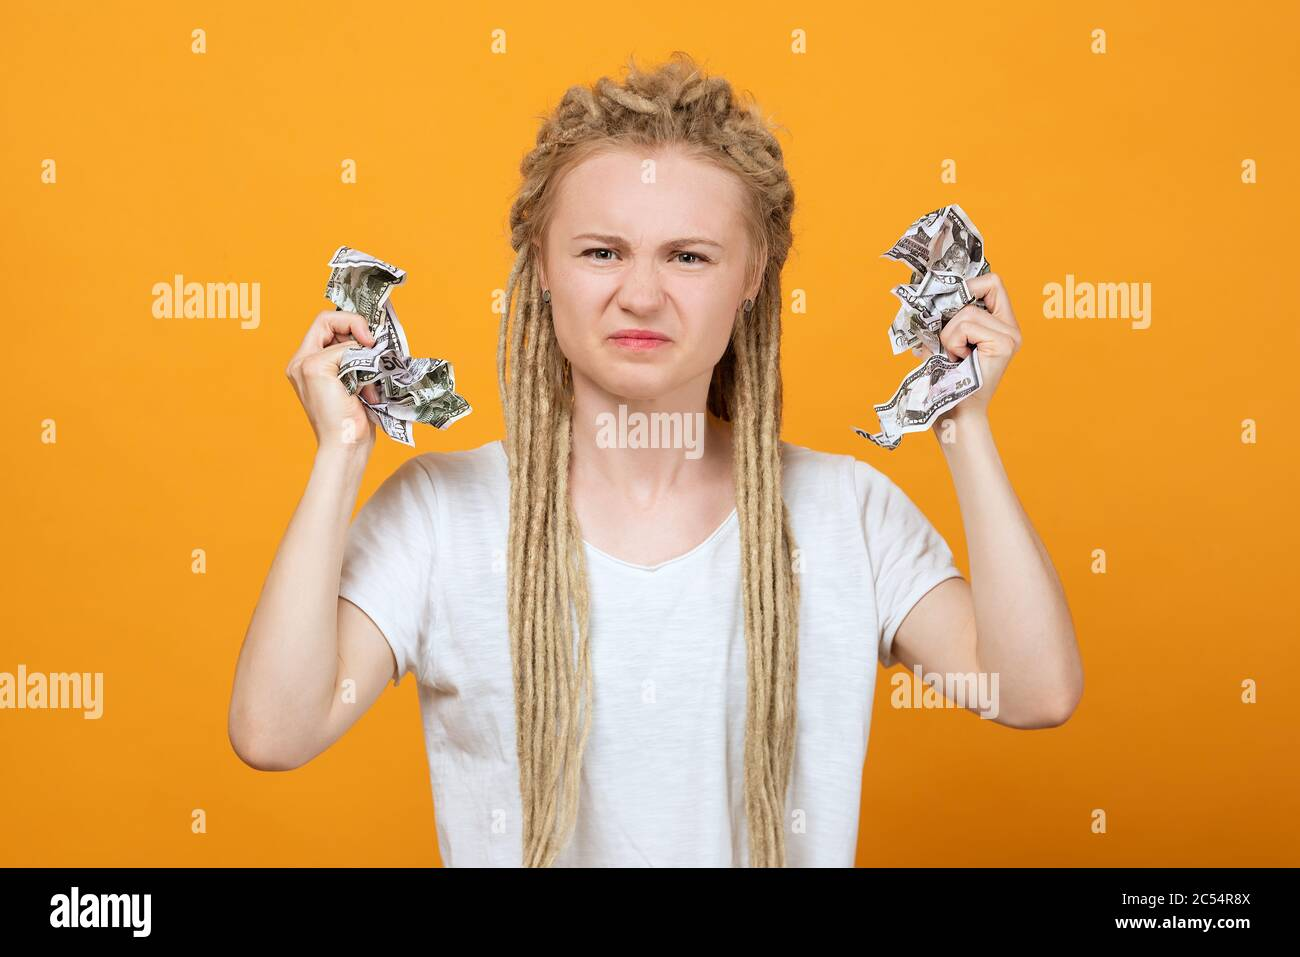 angry and distressed girl holding money in her hands, hair braided in dreadlocks, wrinkled face, Stock Photo